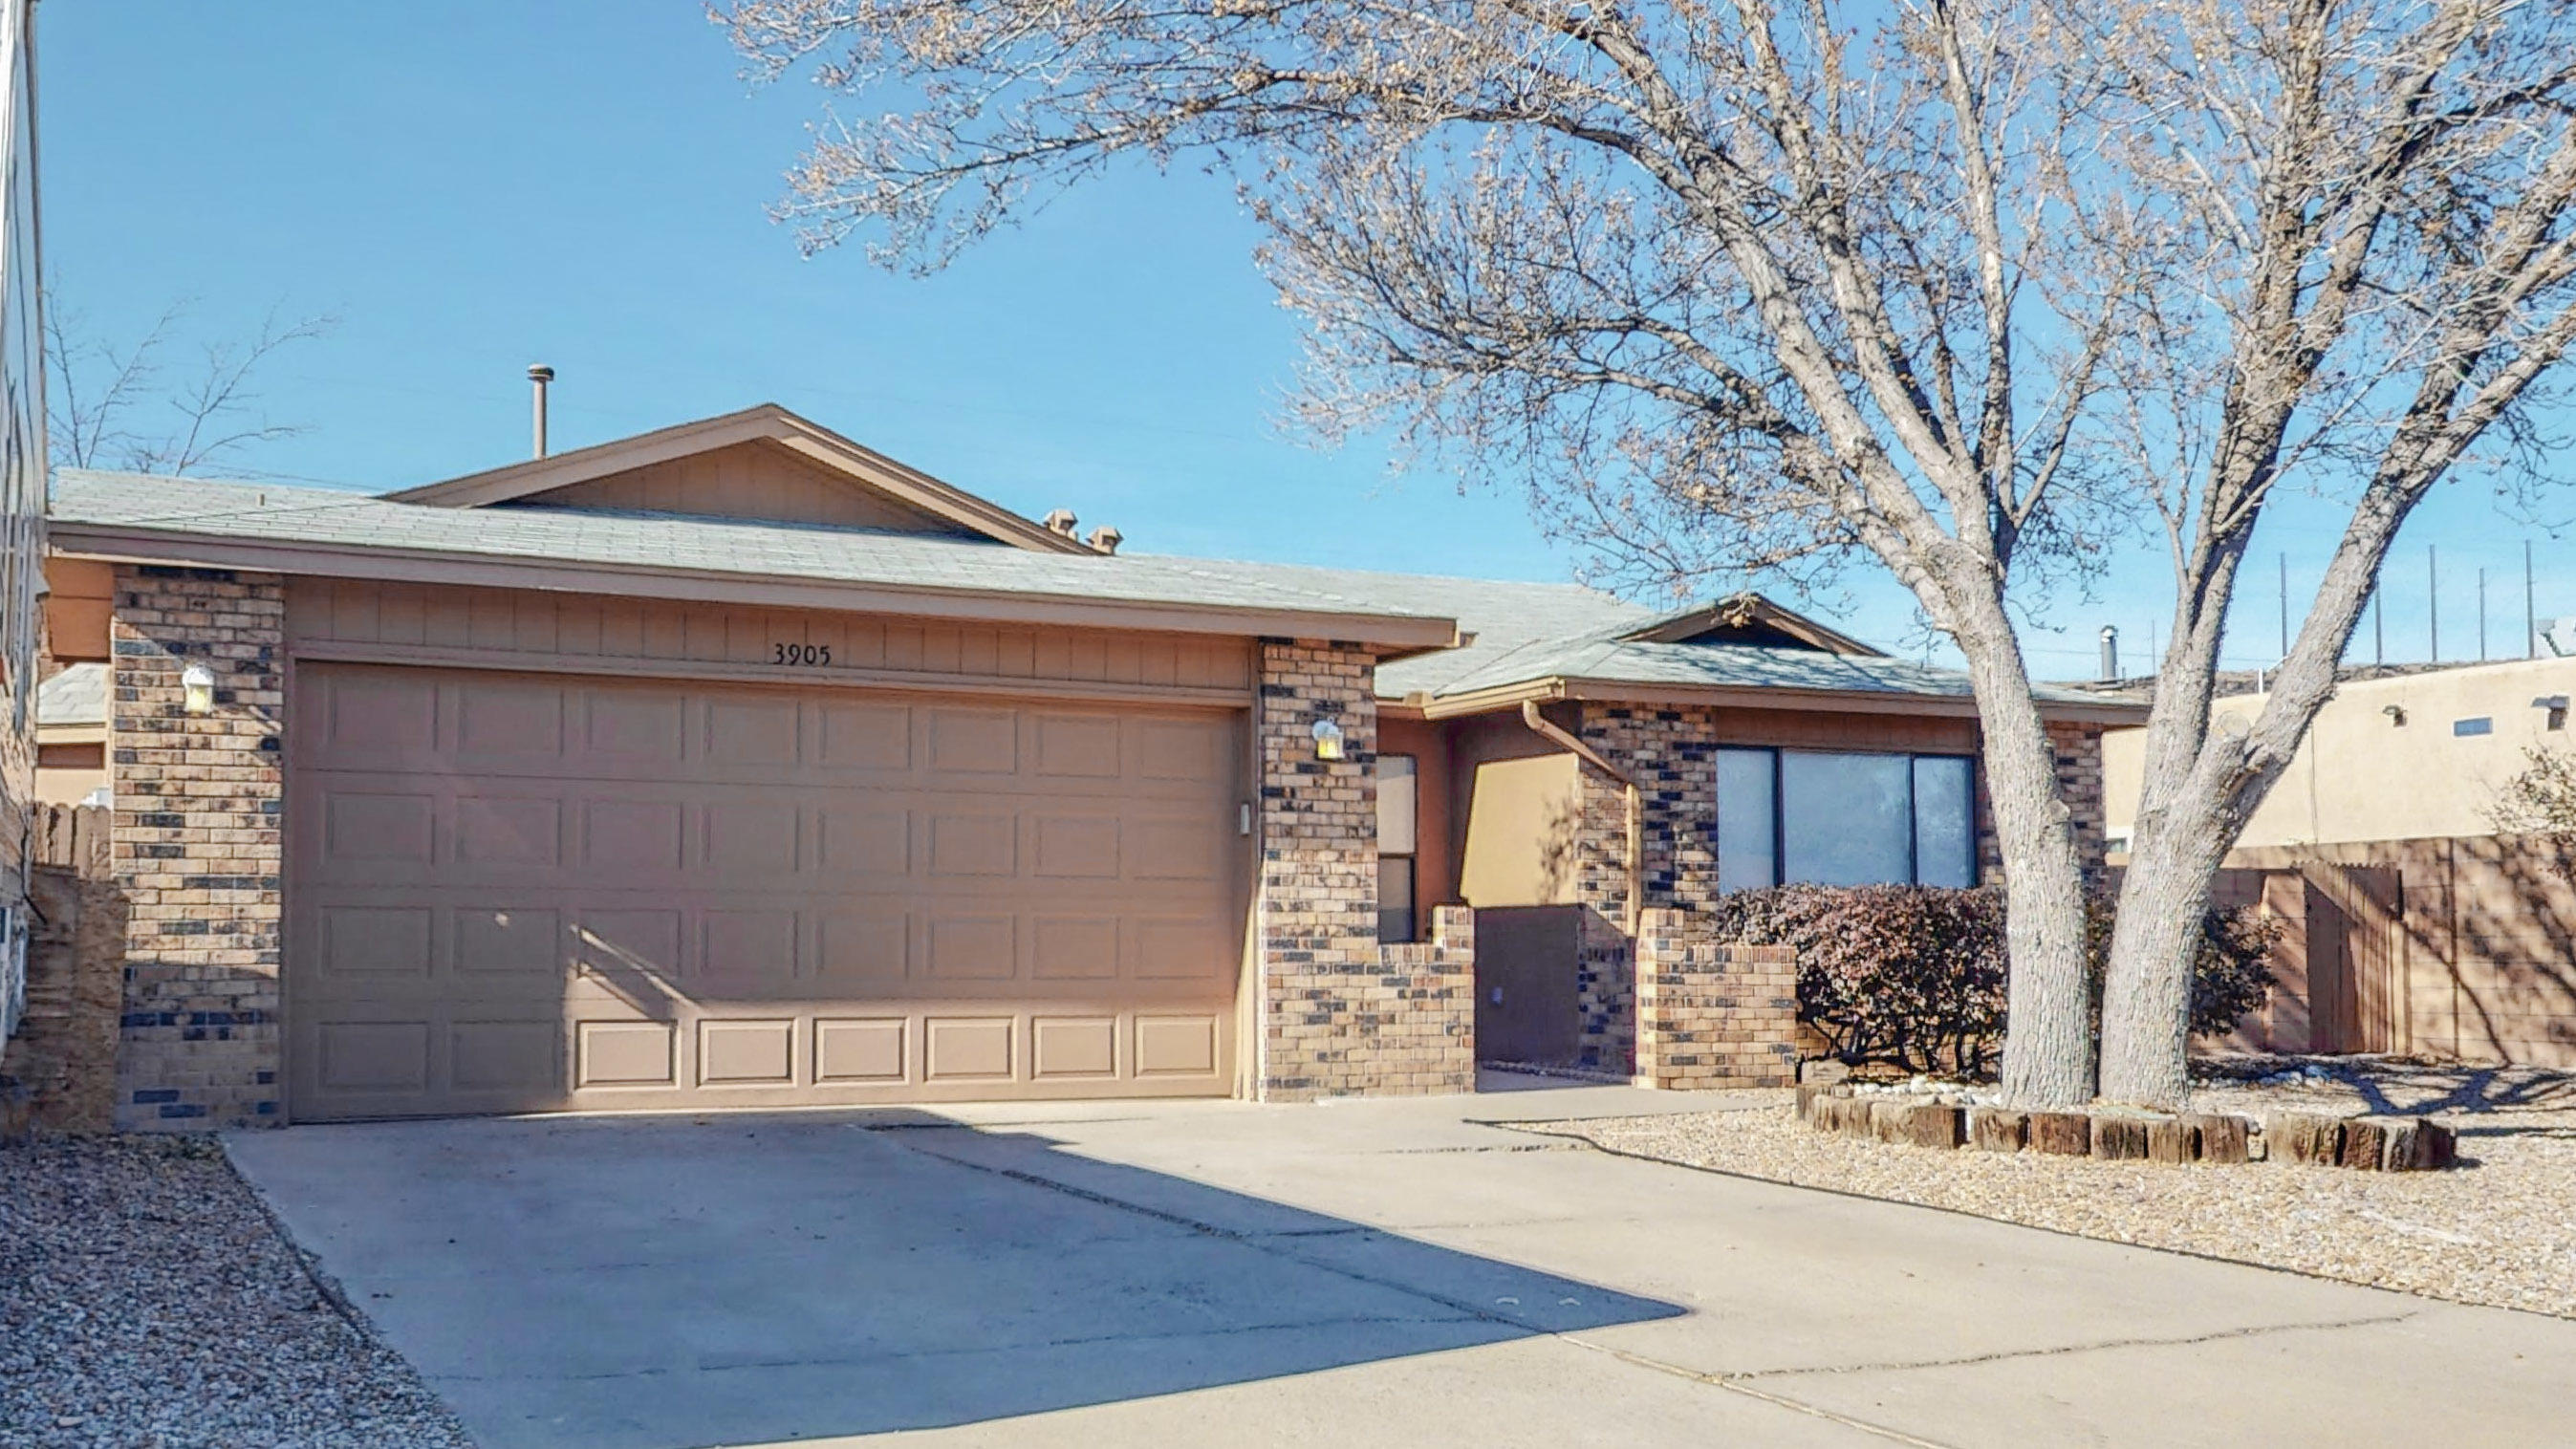 Come home to this clean well cared for home in Ladera Heights!  4 Bedrooms, 2 baths and Refrigerated Air!!  Home also has new carpet, newer paint inside and out, beautifully  landscaped front and back with fire pit, and  new fixtures throughout the home.  Refrigerator, washer and dryer convey.